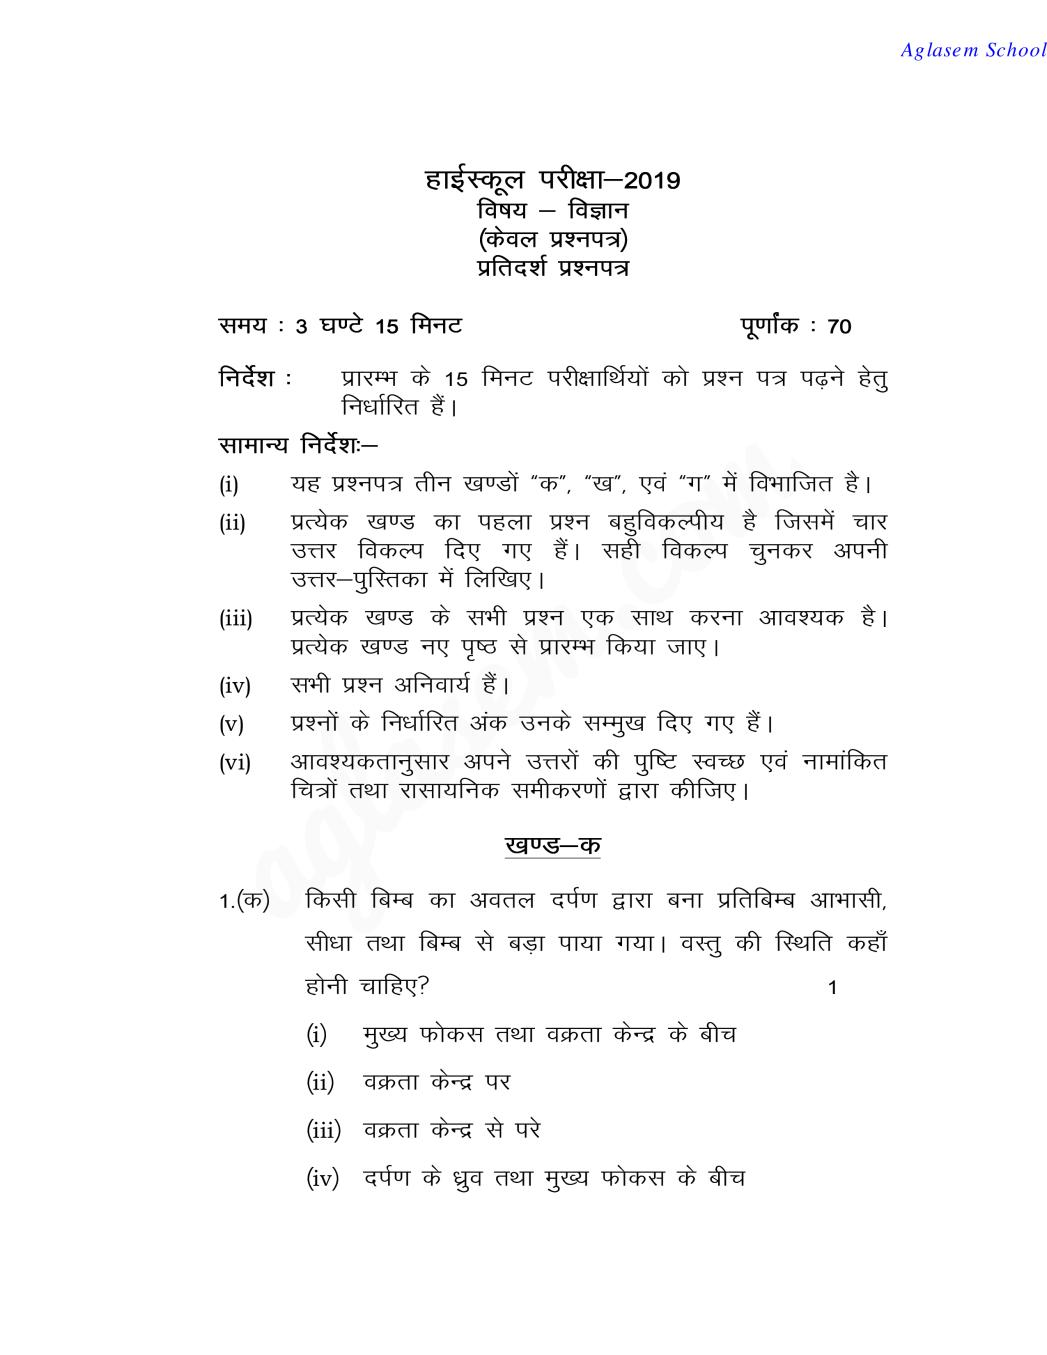 UP Board 2020 Class 10th Model Question Papers for Science